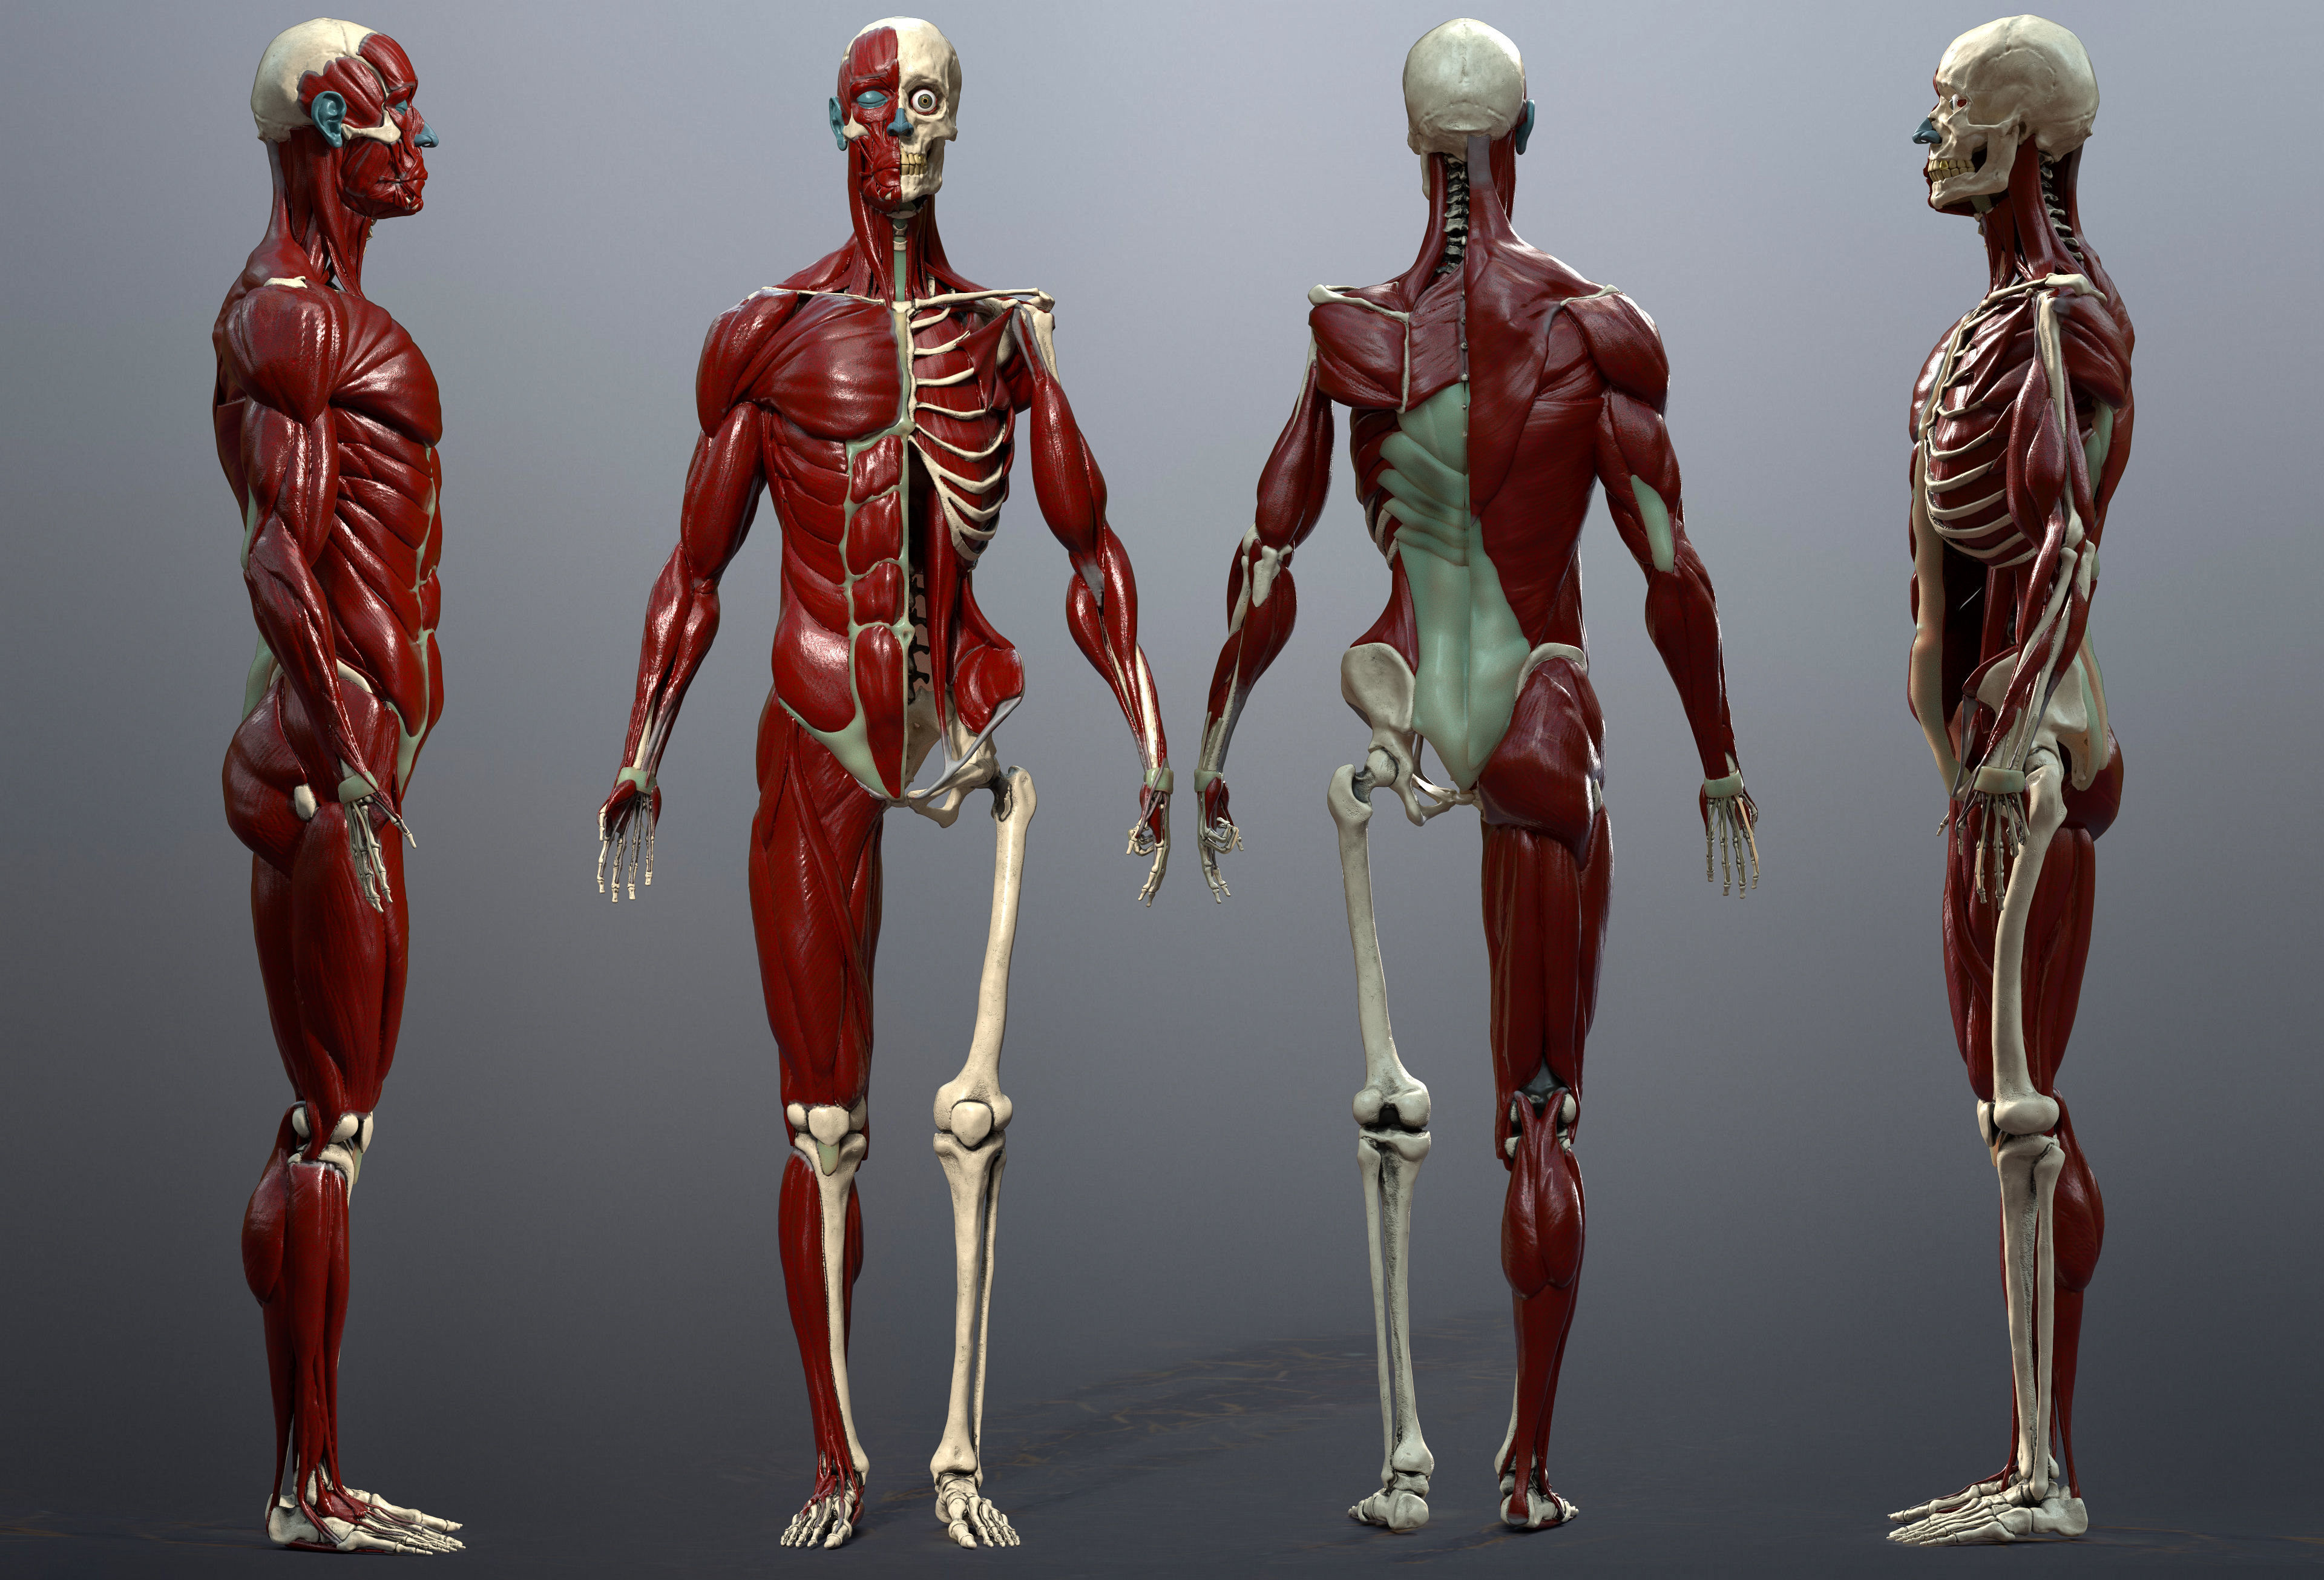 Skeleton and Muscles Study